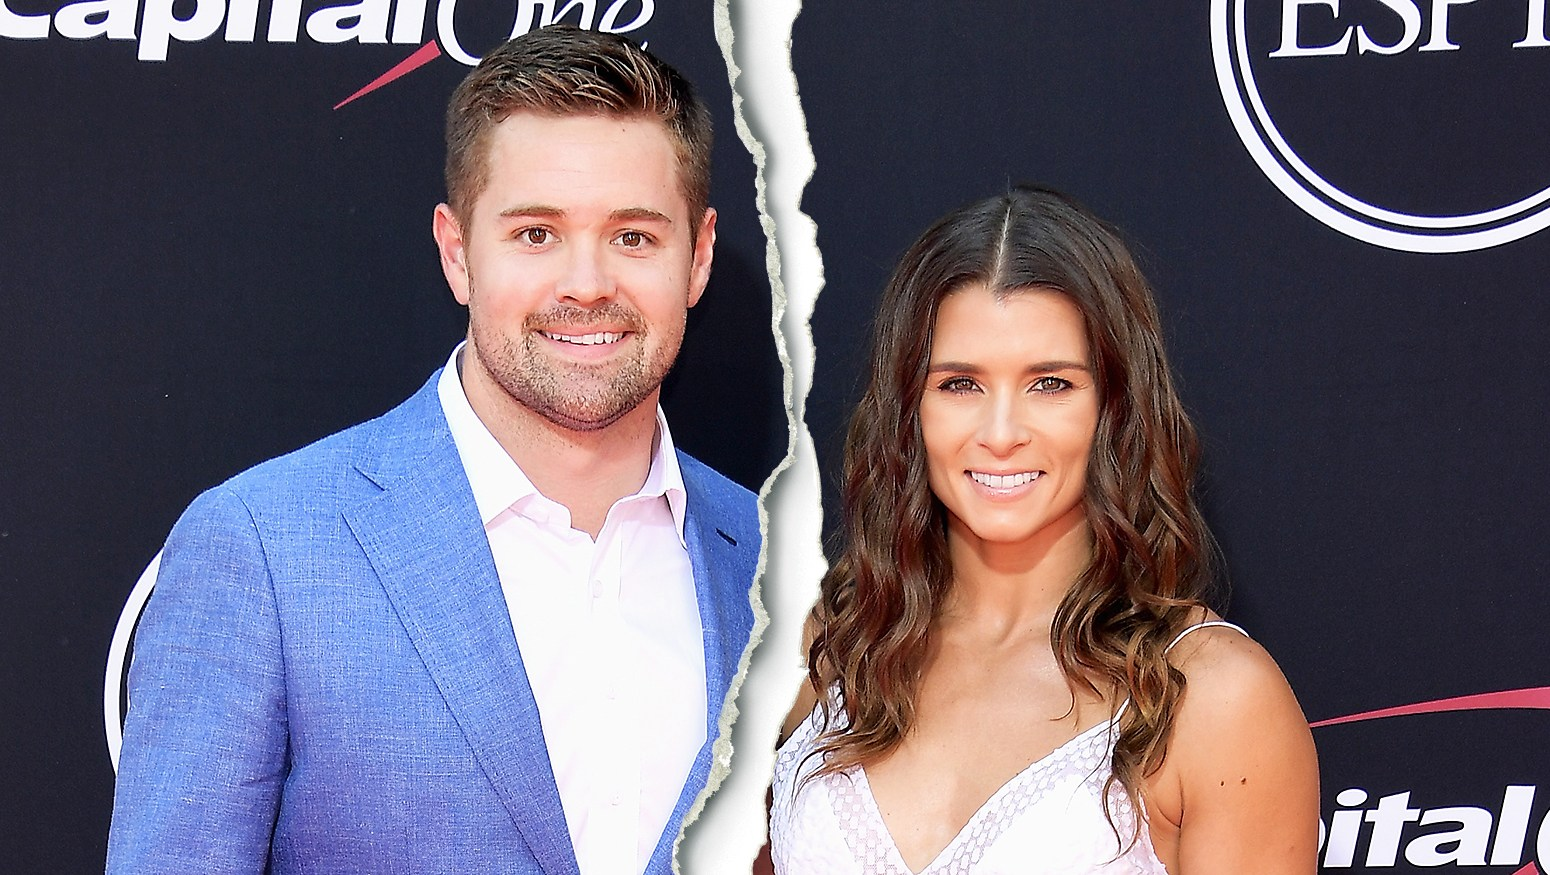 Danica Patrick and Ricky Stenhouse Jr. Break Up After Five Years